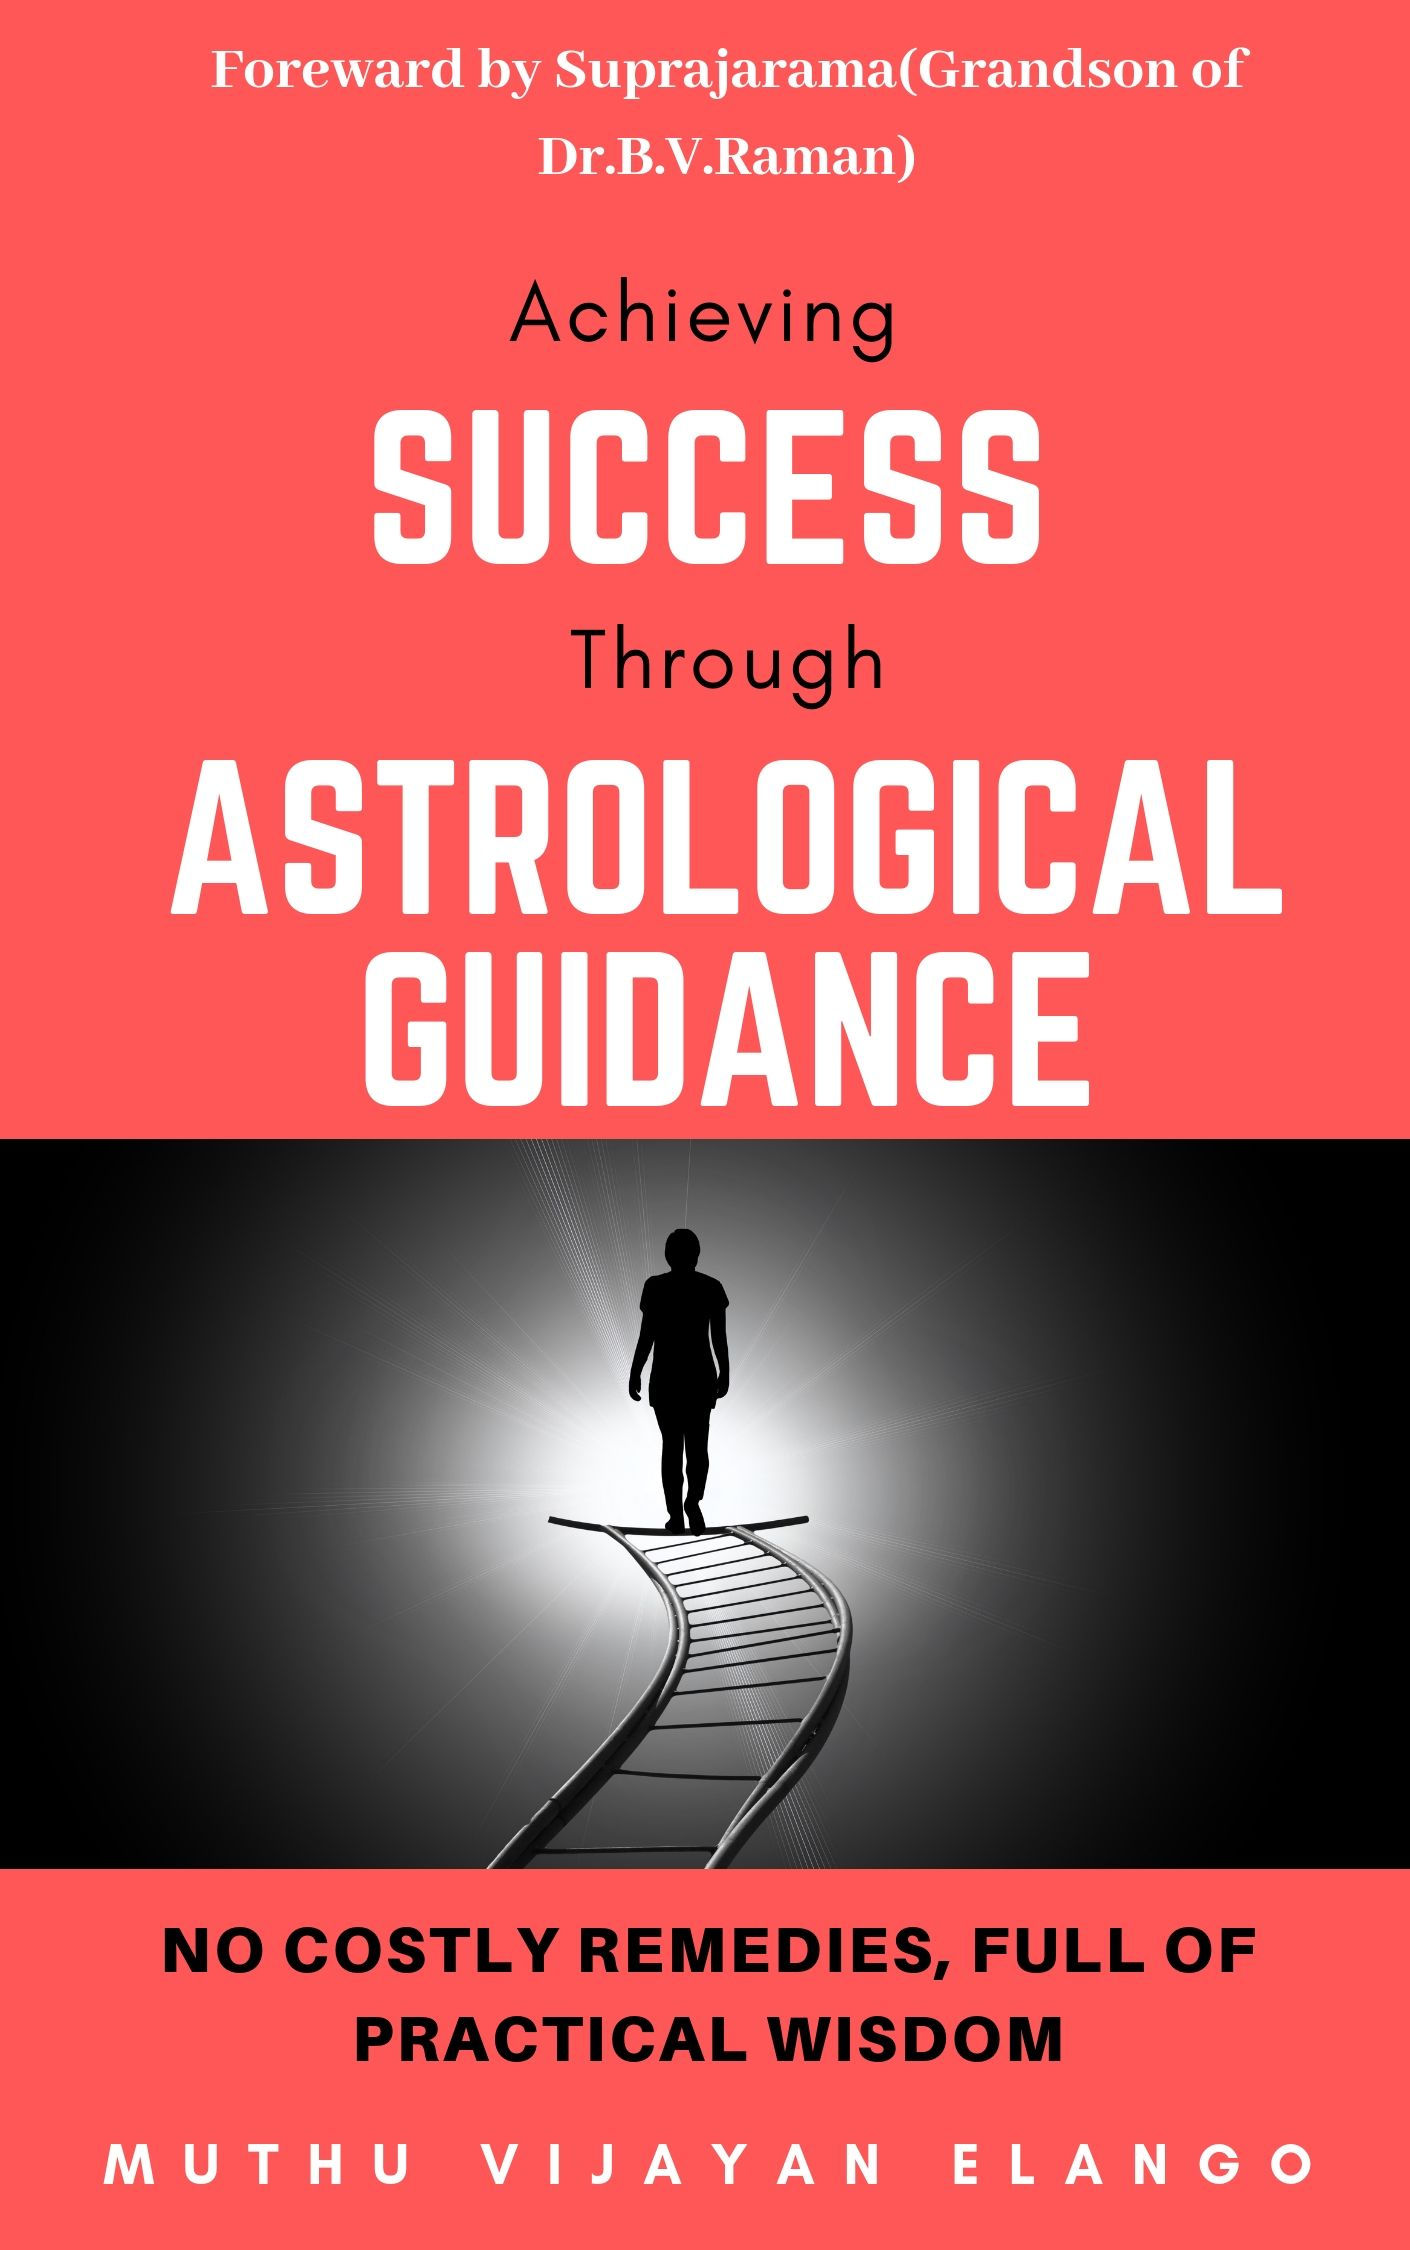 Book: Achieving Success Through Astrological Guidance